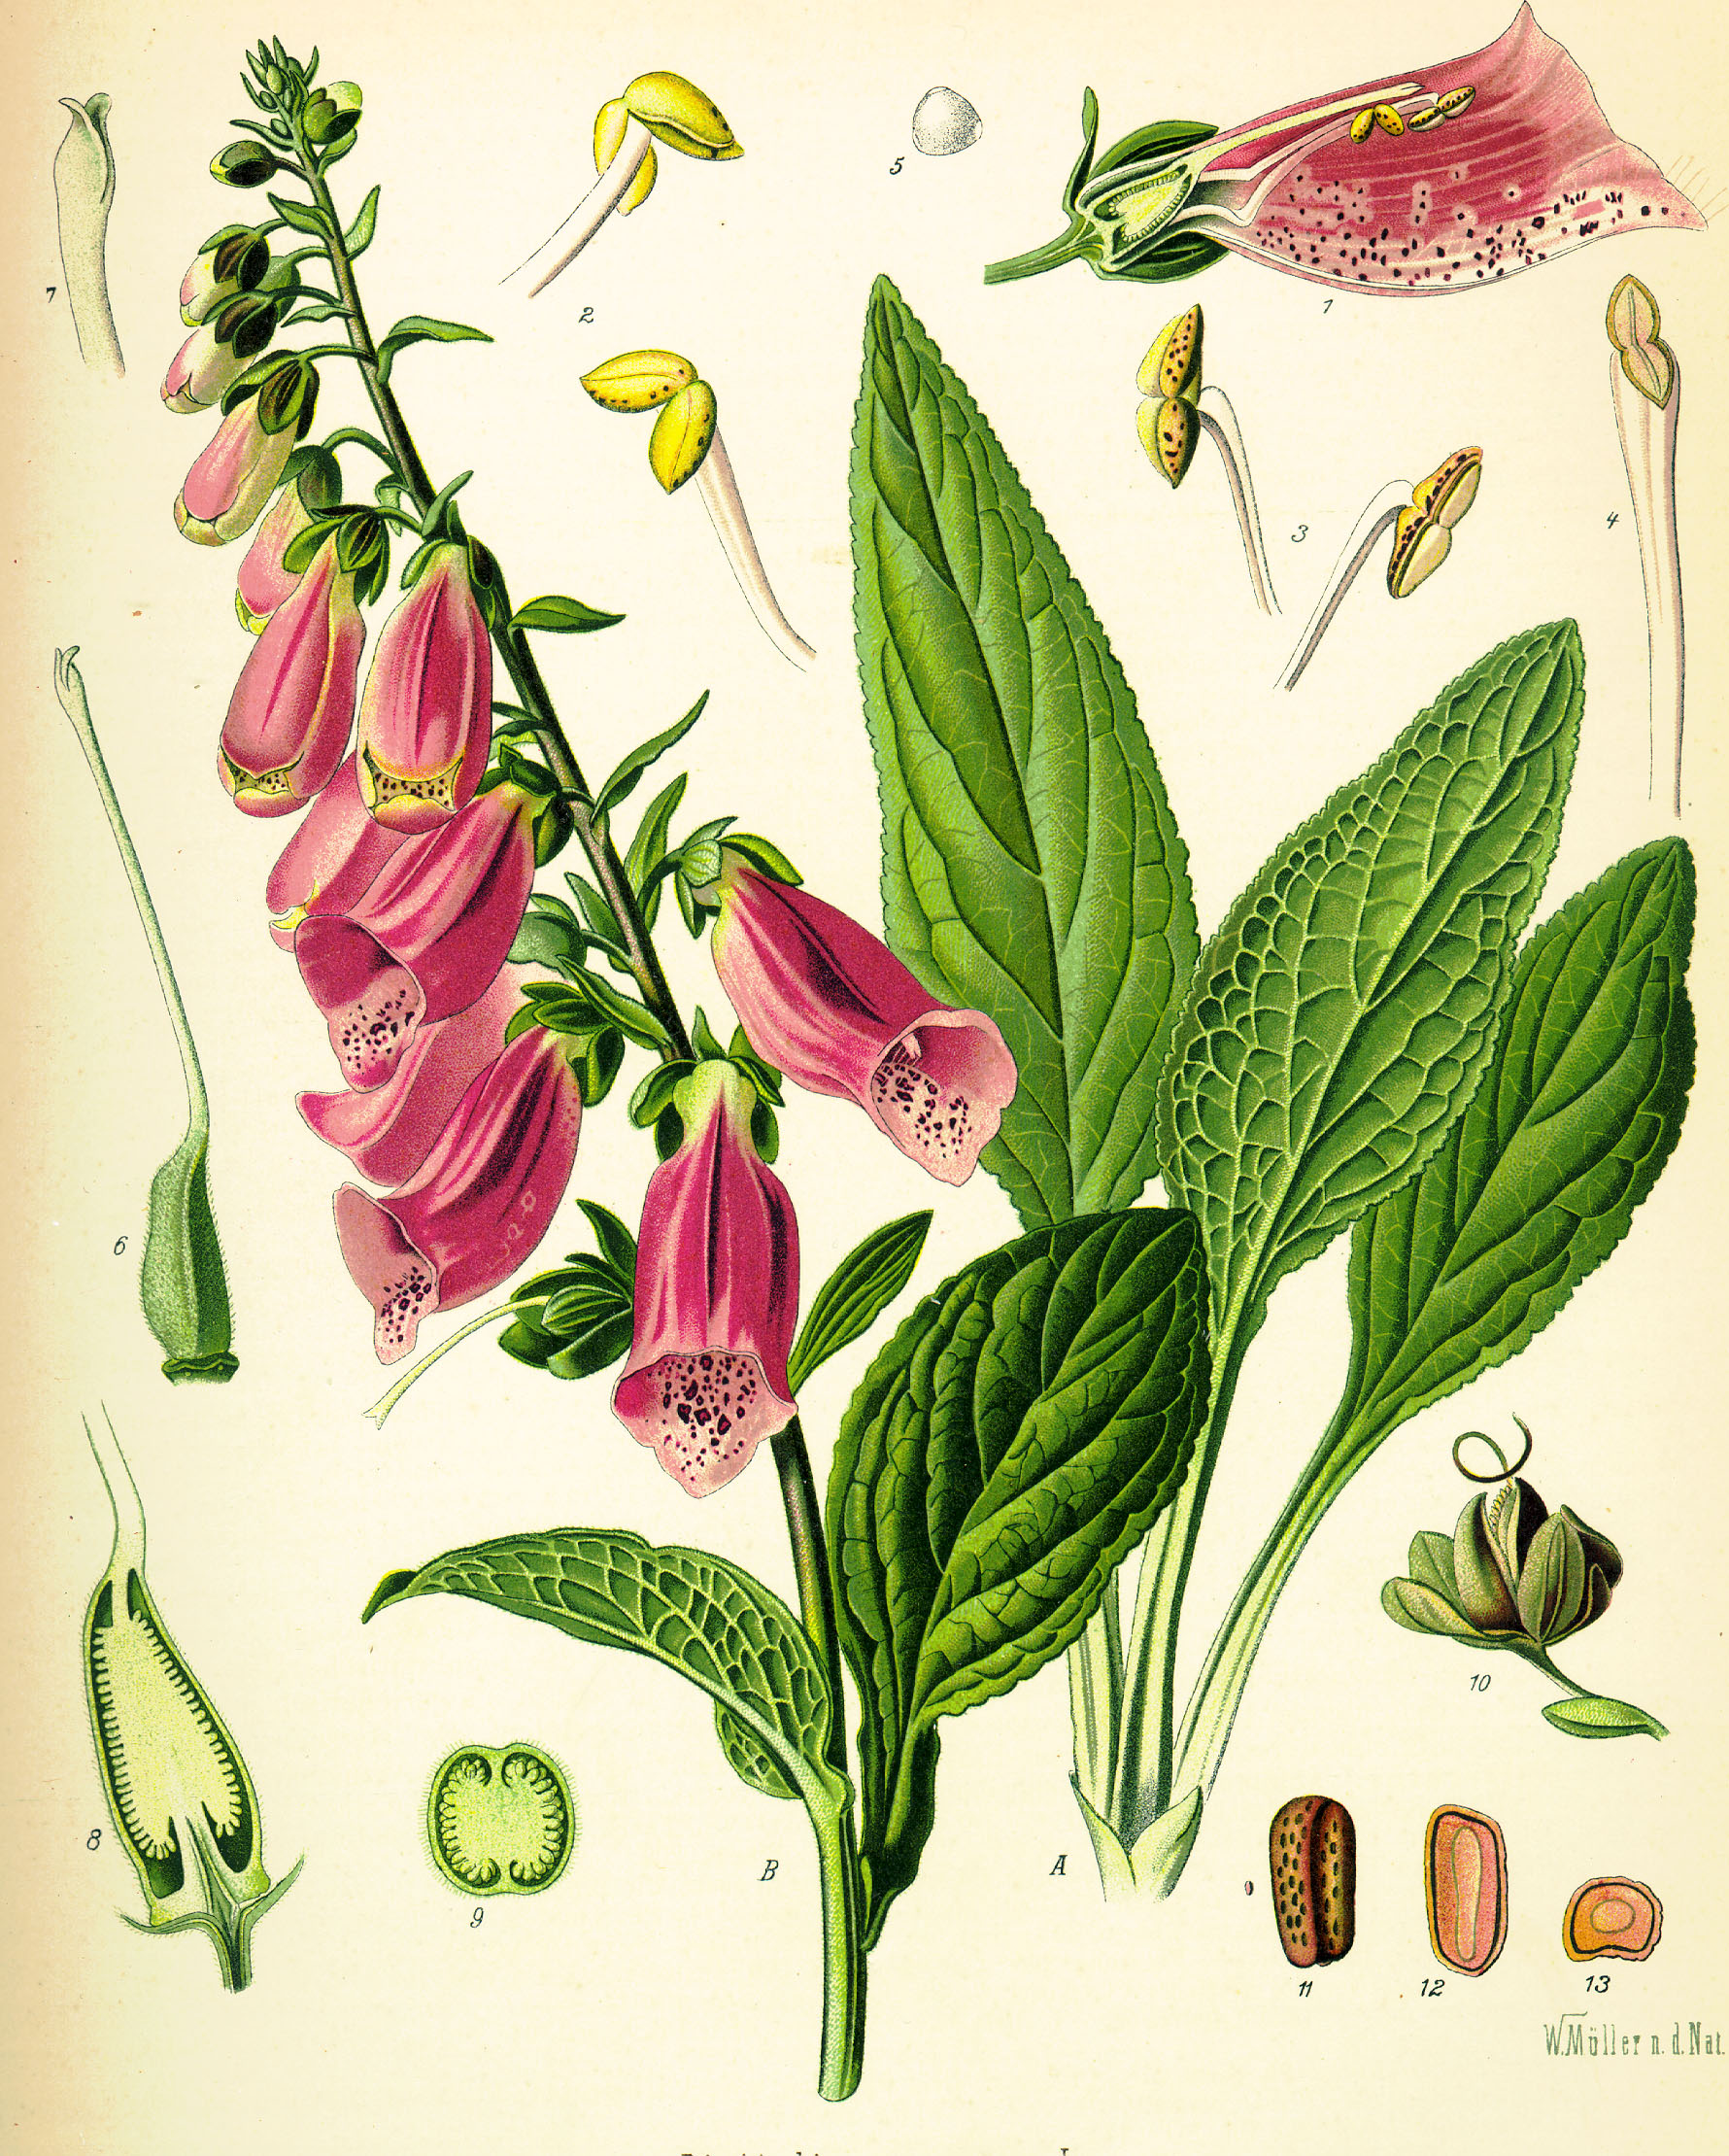 File Digitalis purpurea Koehler drawing Wikimedia mons